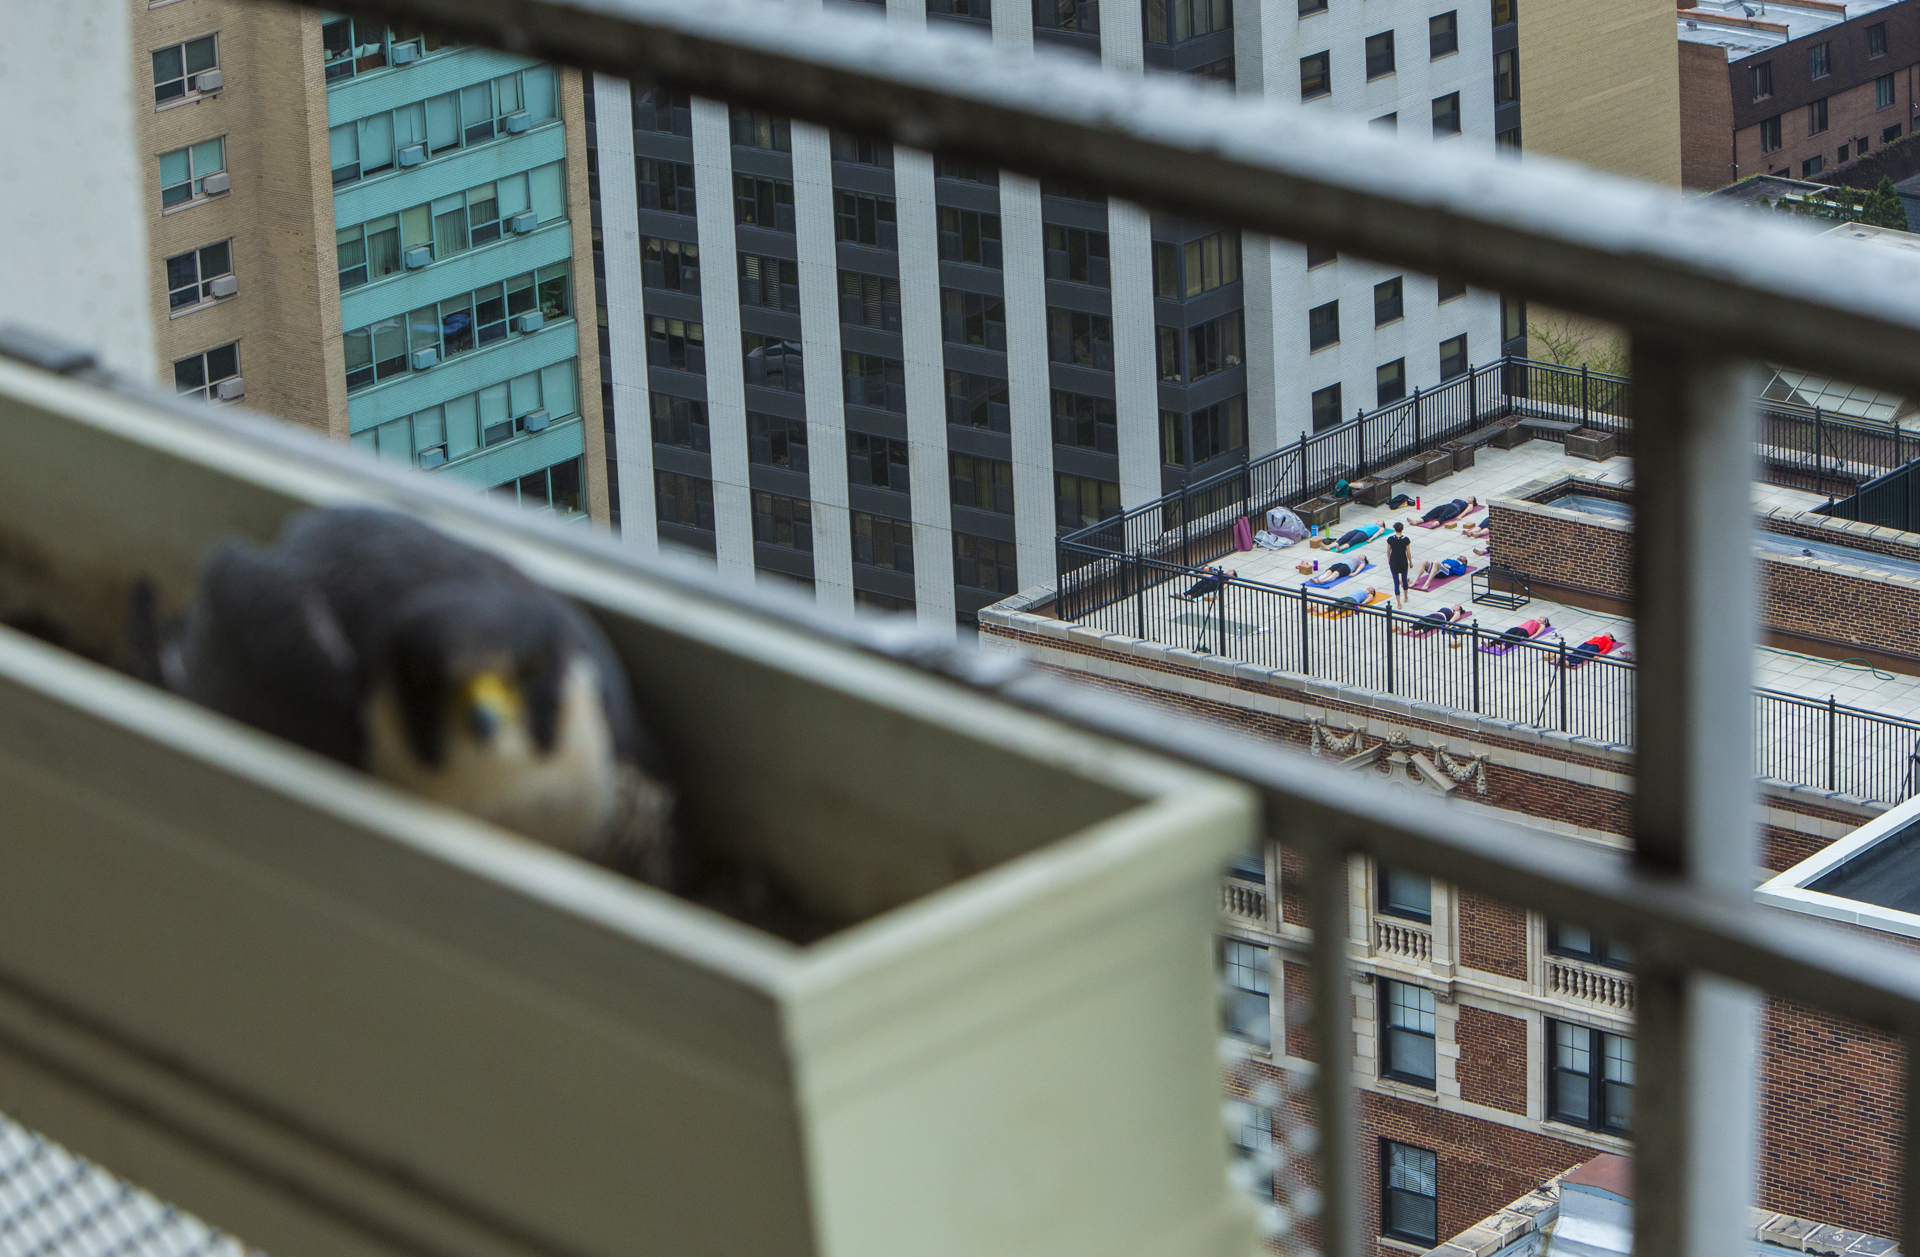 Whilst humans went about their daily routine, peregrines went about theirs overhead.